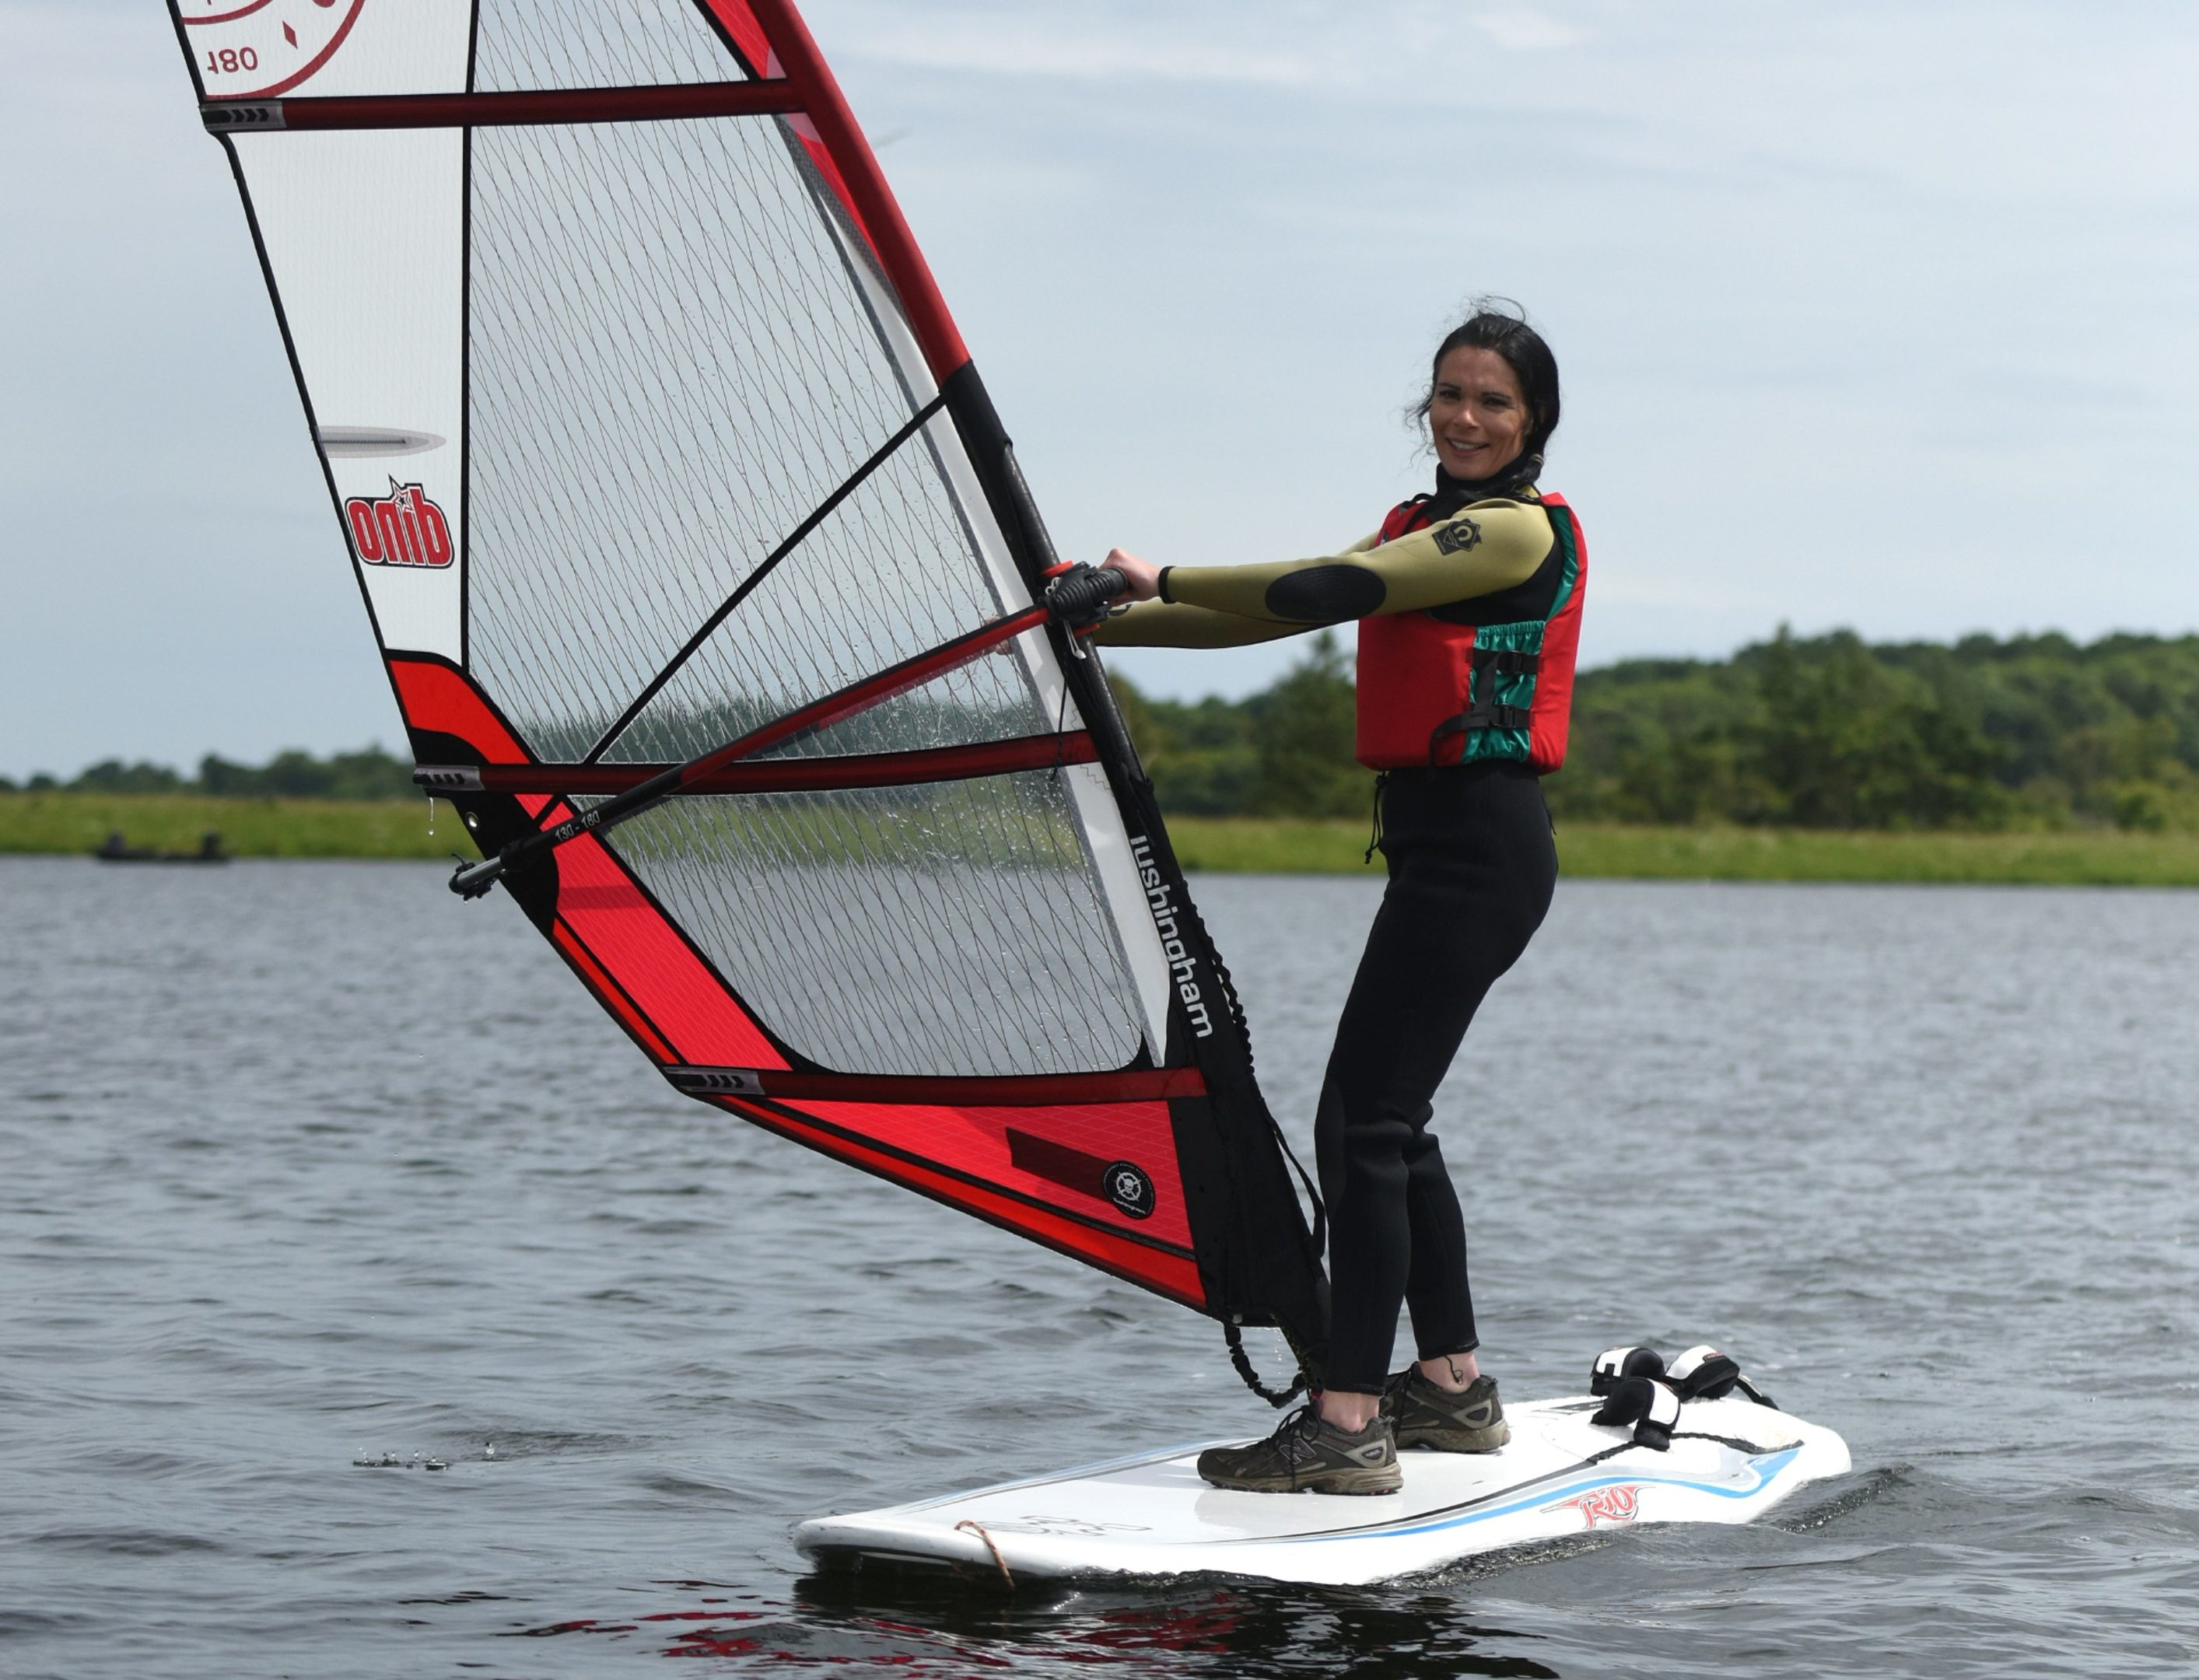 Gayle goes windsurfing at Monikie Country Park.